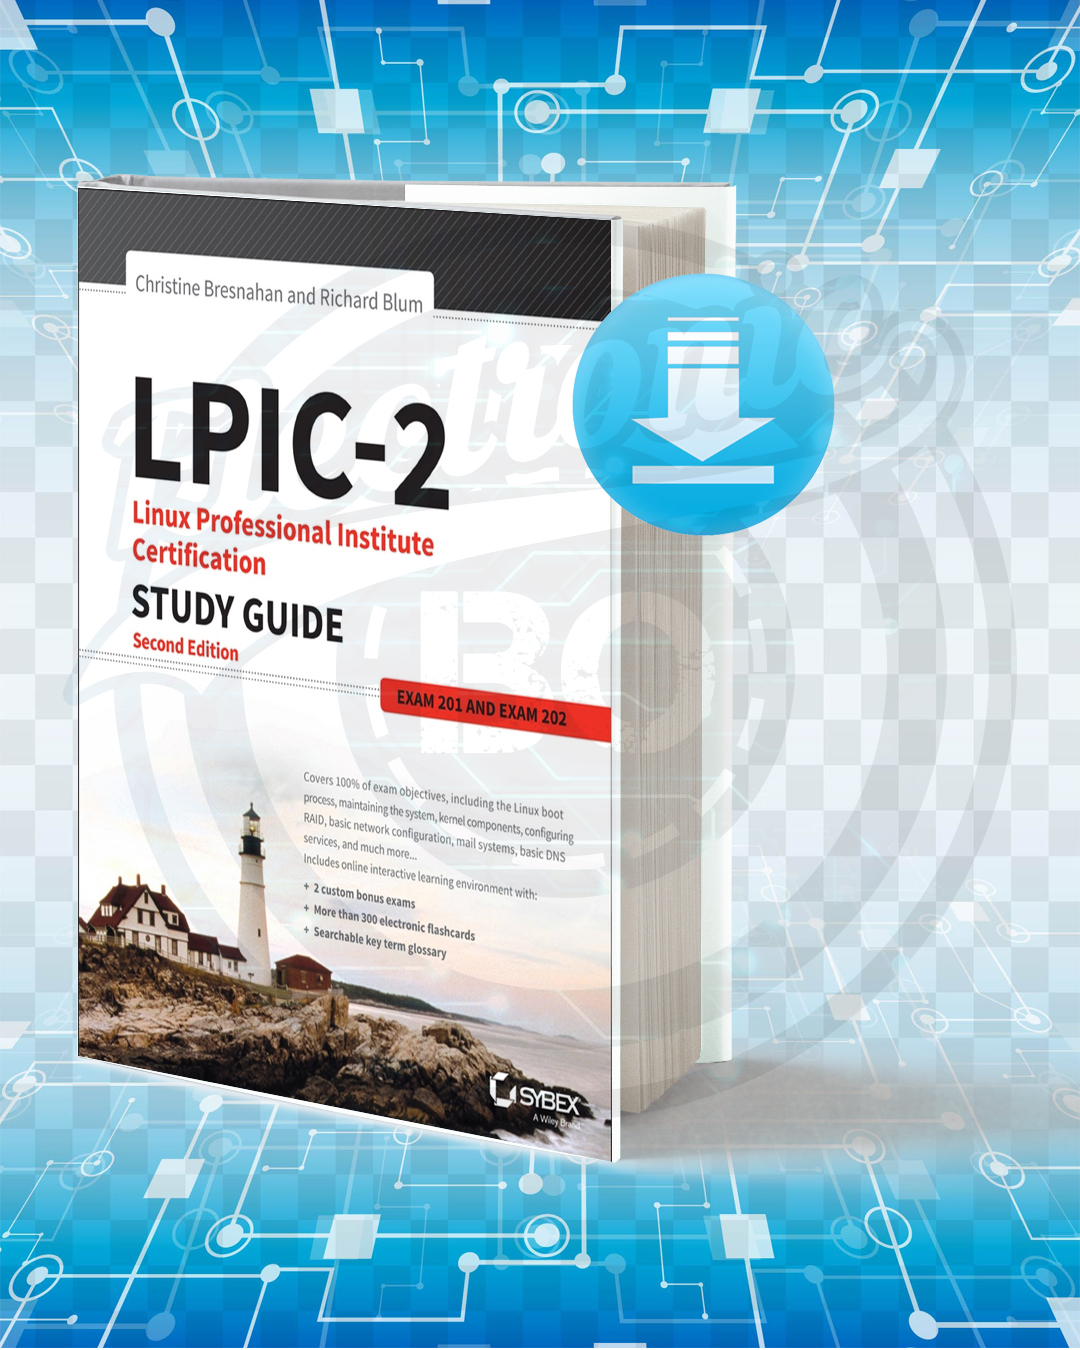 Free Book LPIC-2 Linux Professional Institute Certification Study Guide pdf.